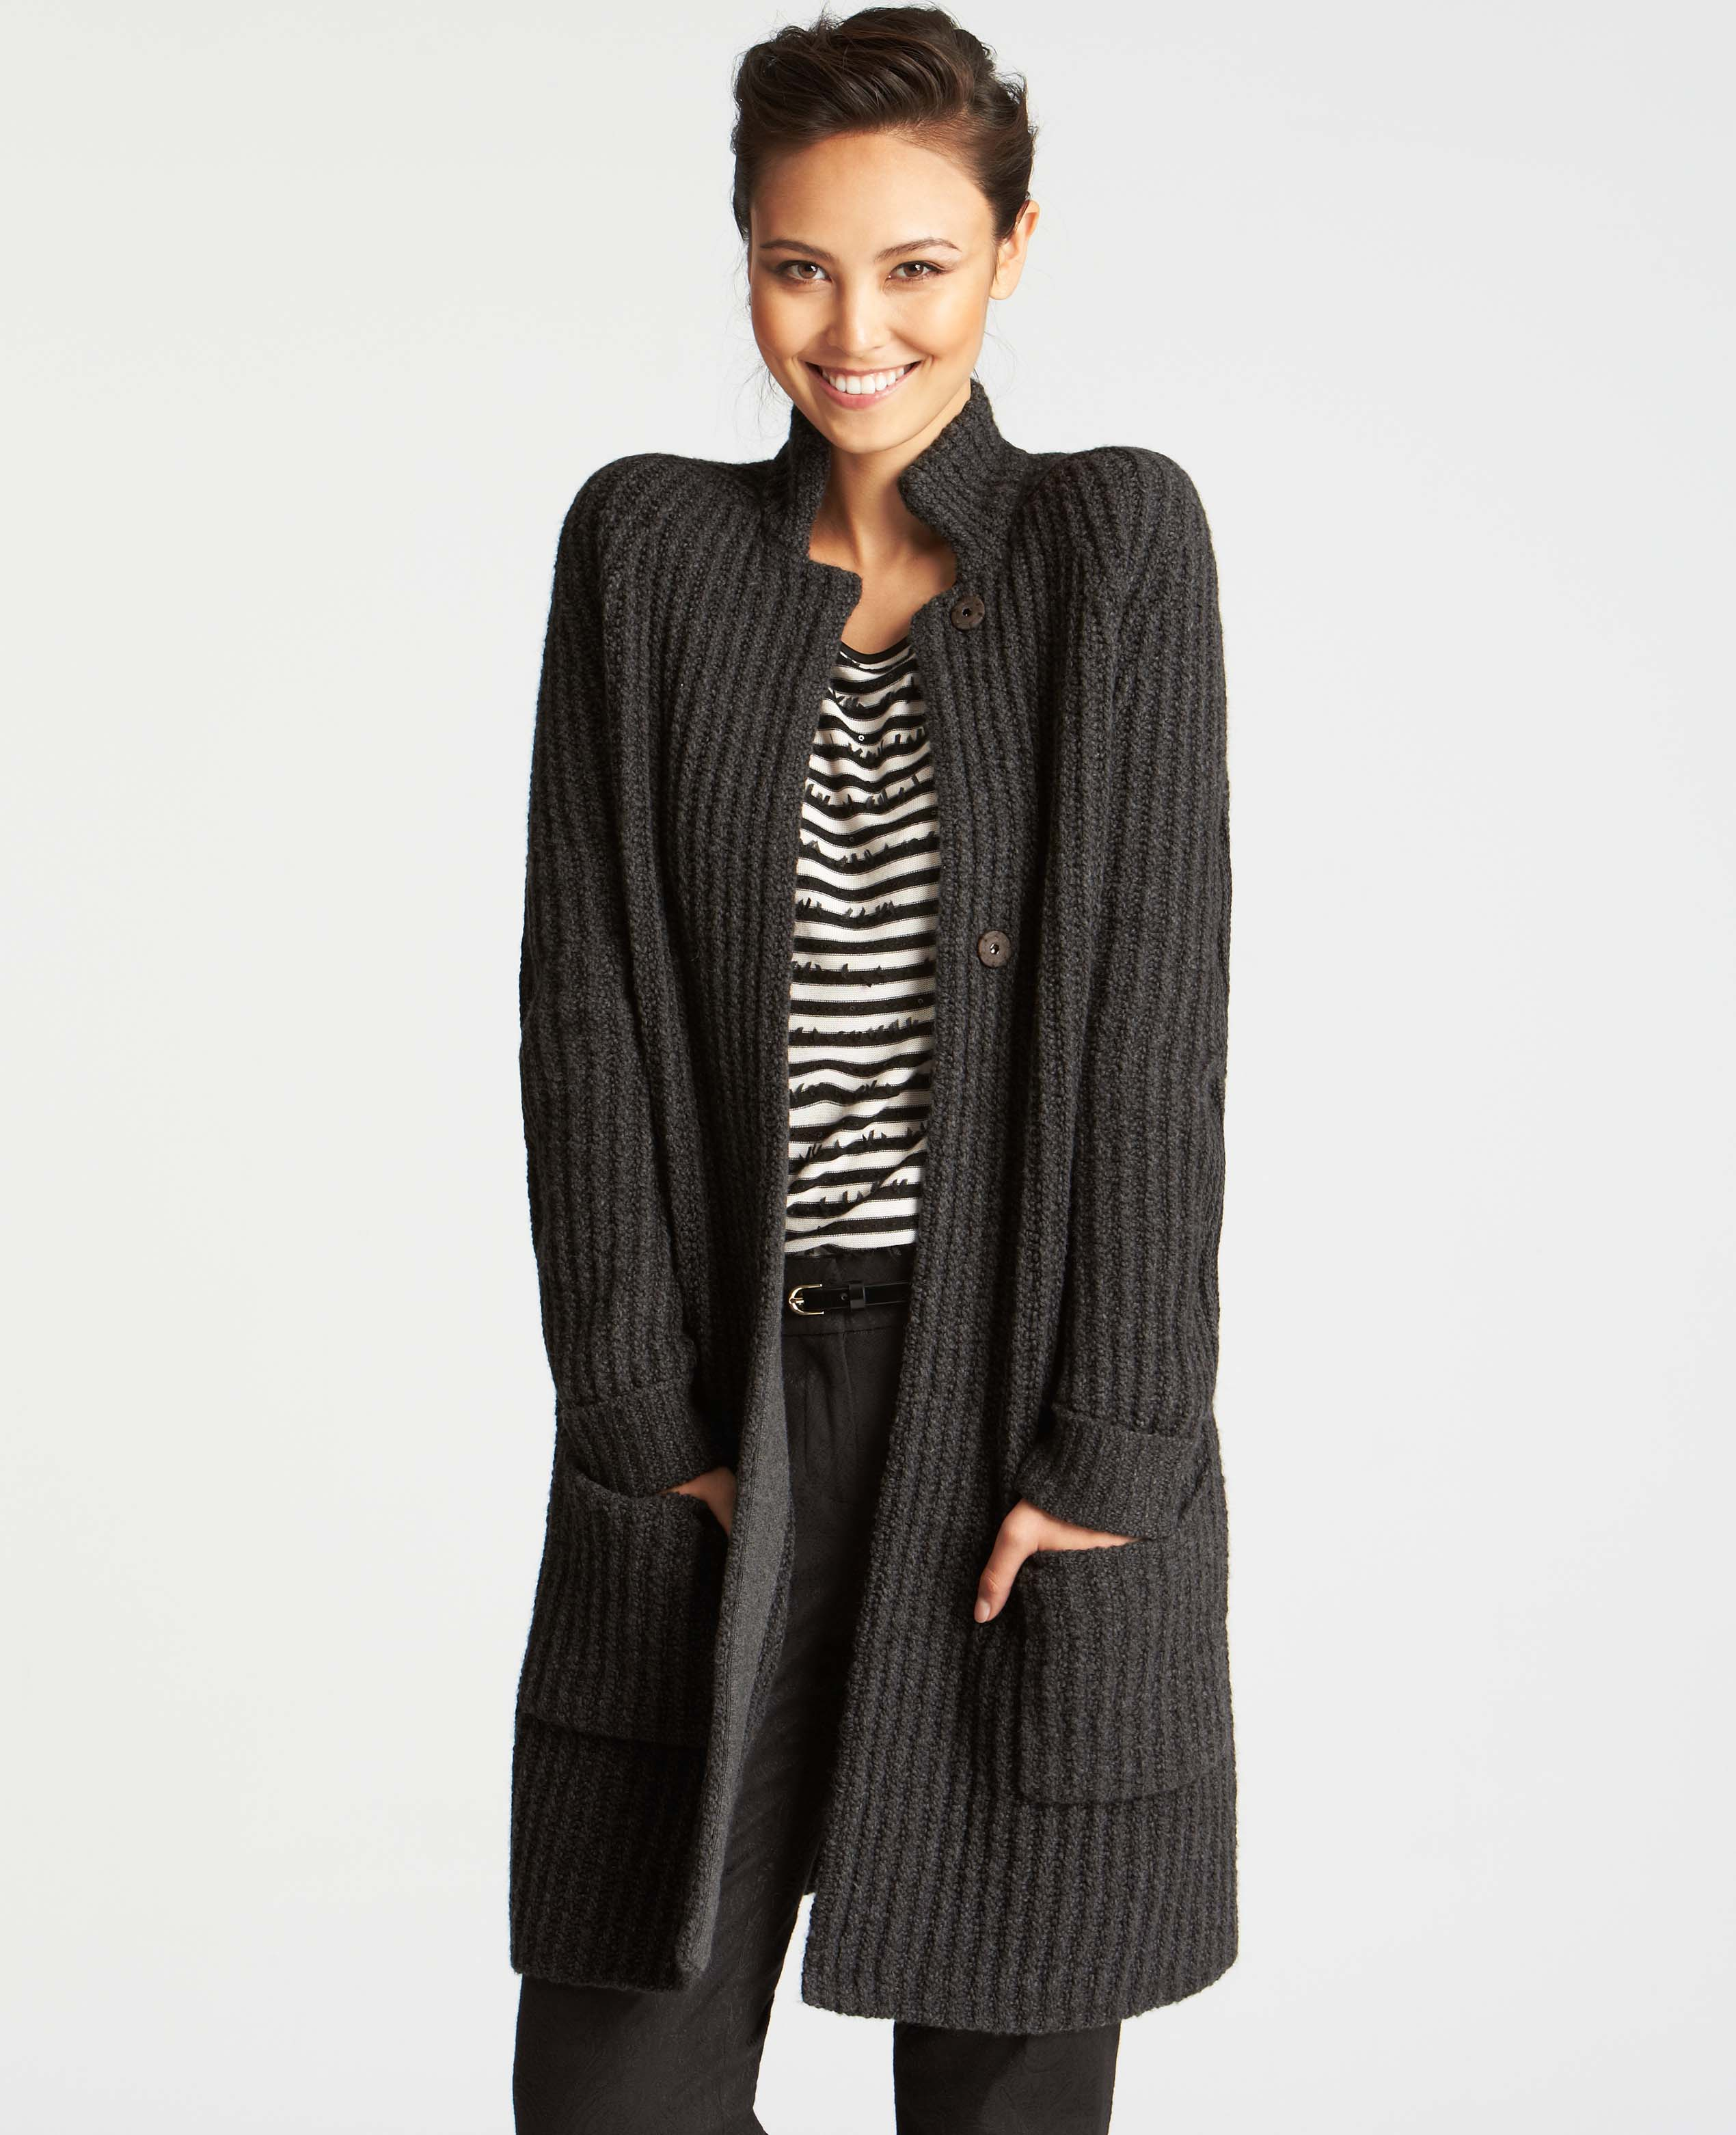 You searched for: sweater coat! Etsy is the home to thousands of handmade, vintage, and one-of-a-kind products and gifts related to your search. No matter what you're looking for or where you are in the world, our global marketplace of sellers can help you find unique and affordable options. Let's get started!